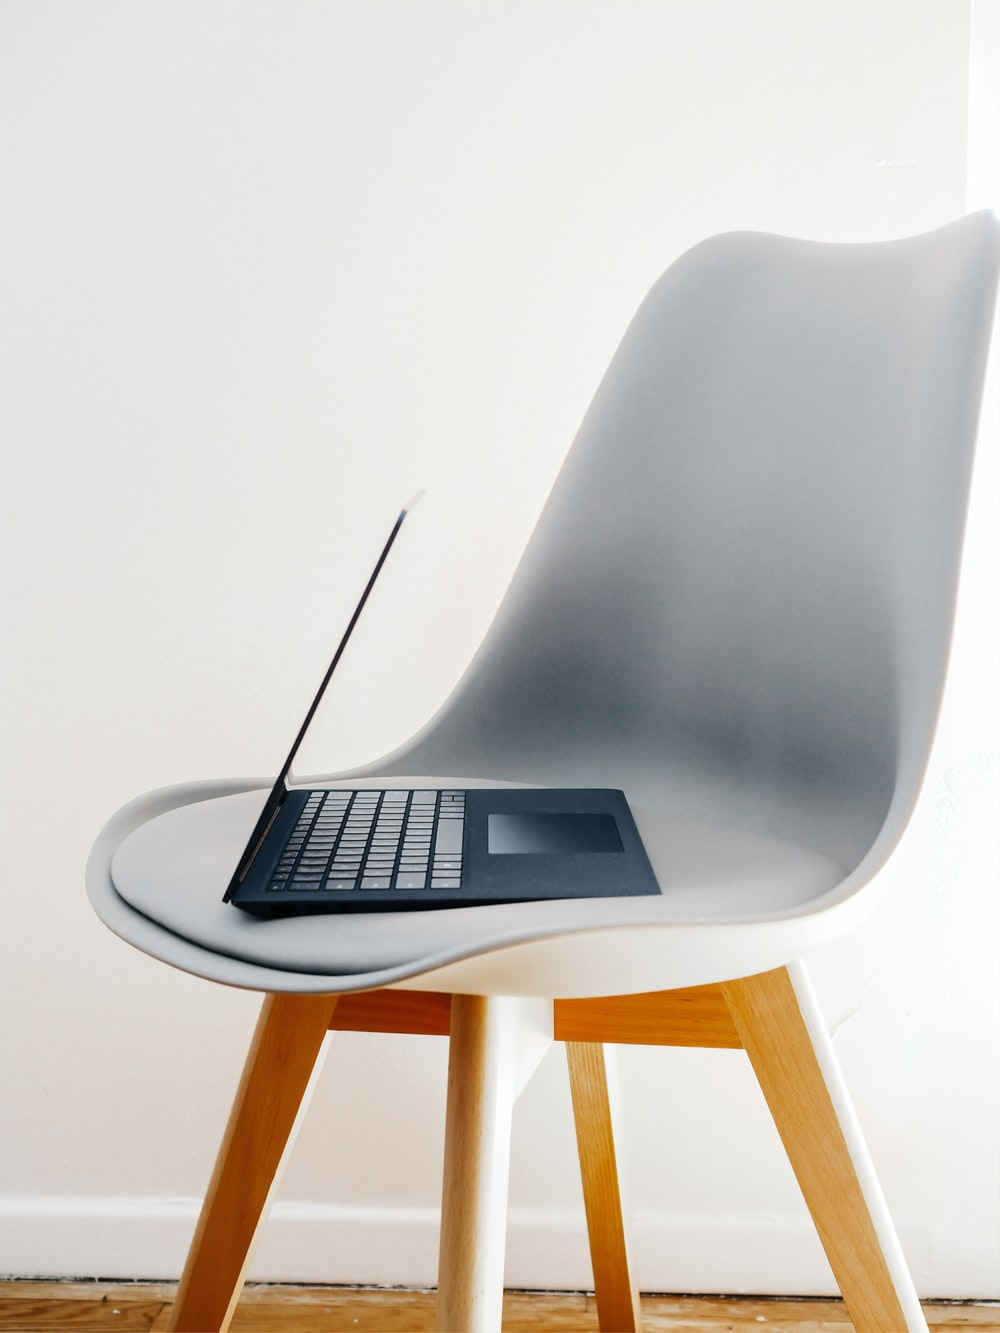 microsoft surface laptop on white chair